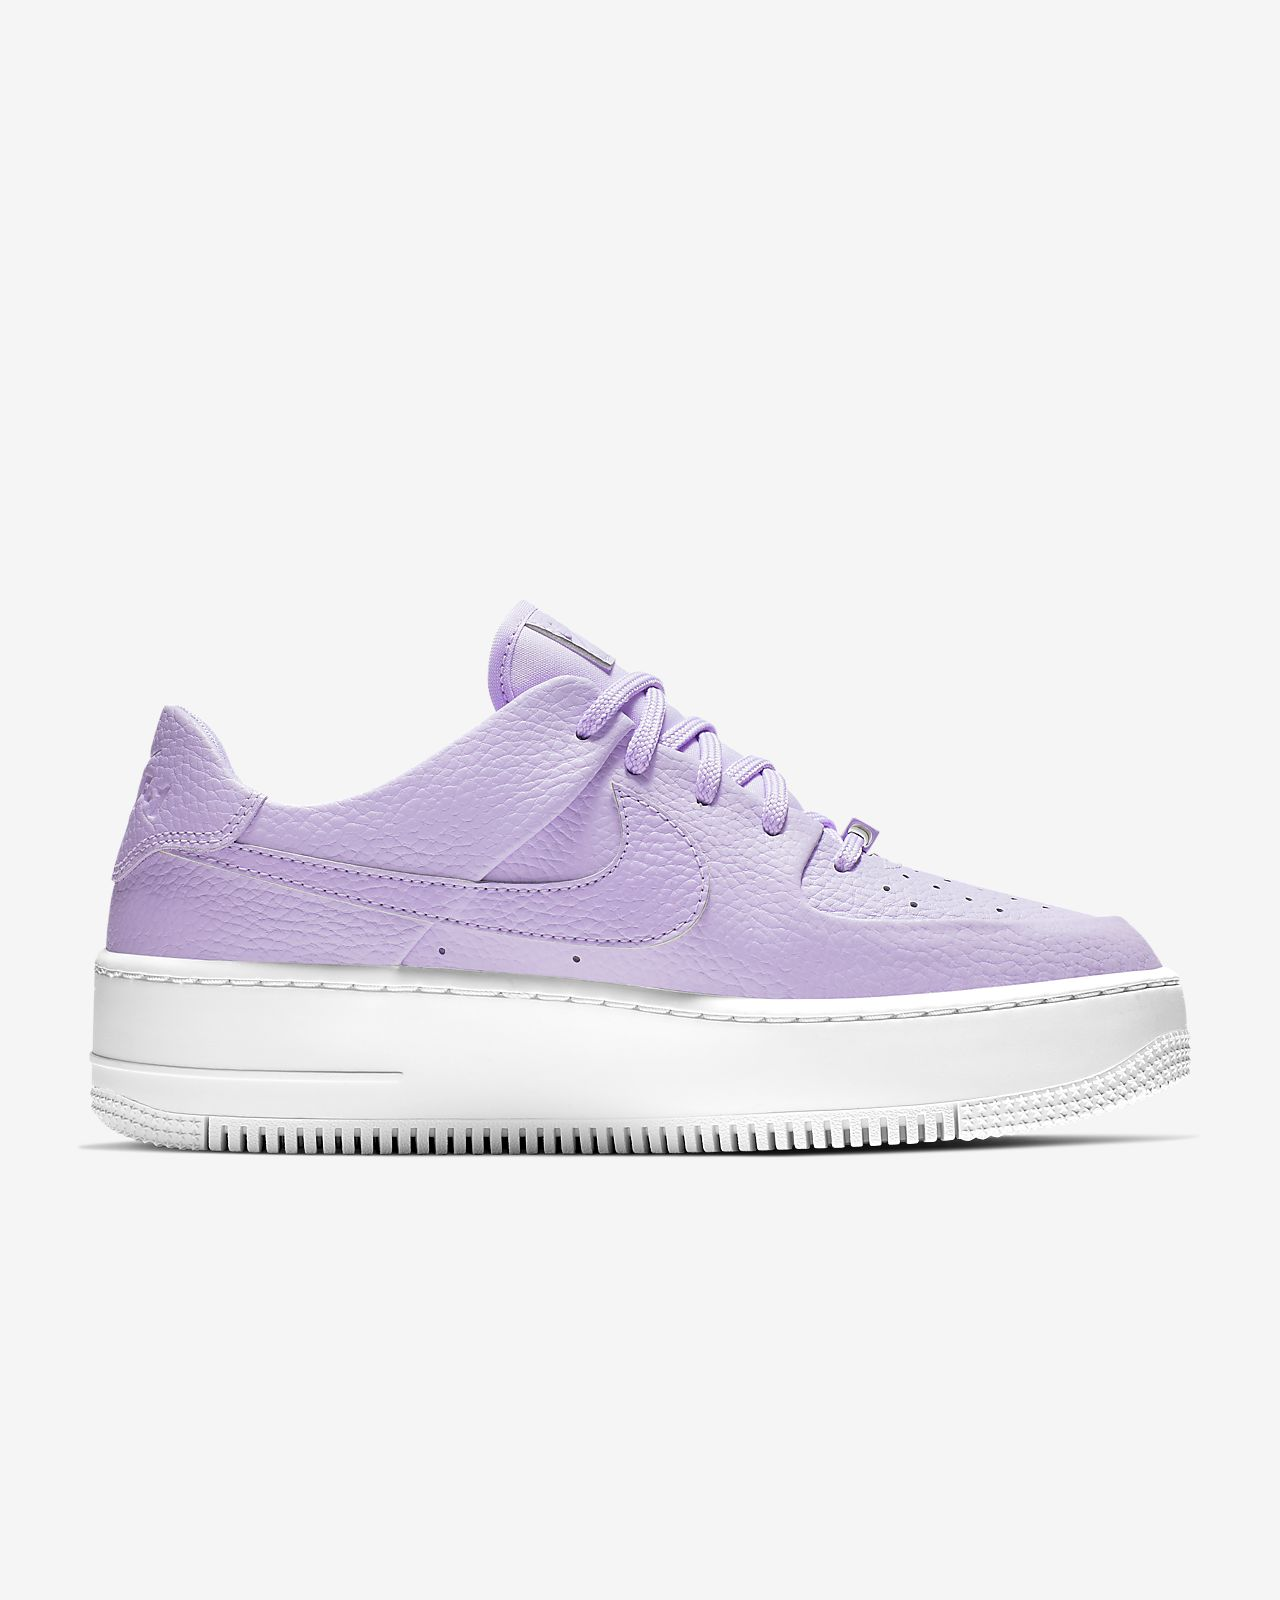 be2e68eb155 Calzado para mujer Nike Air Force 1 Sage Low. Nike.com CL